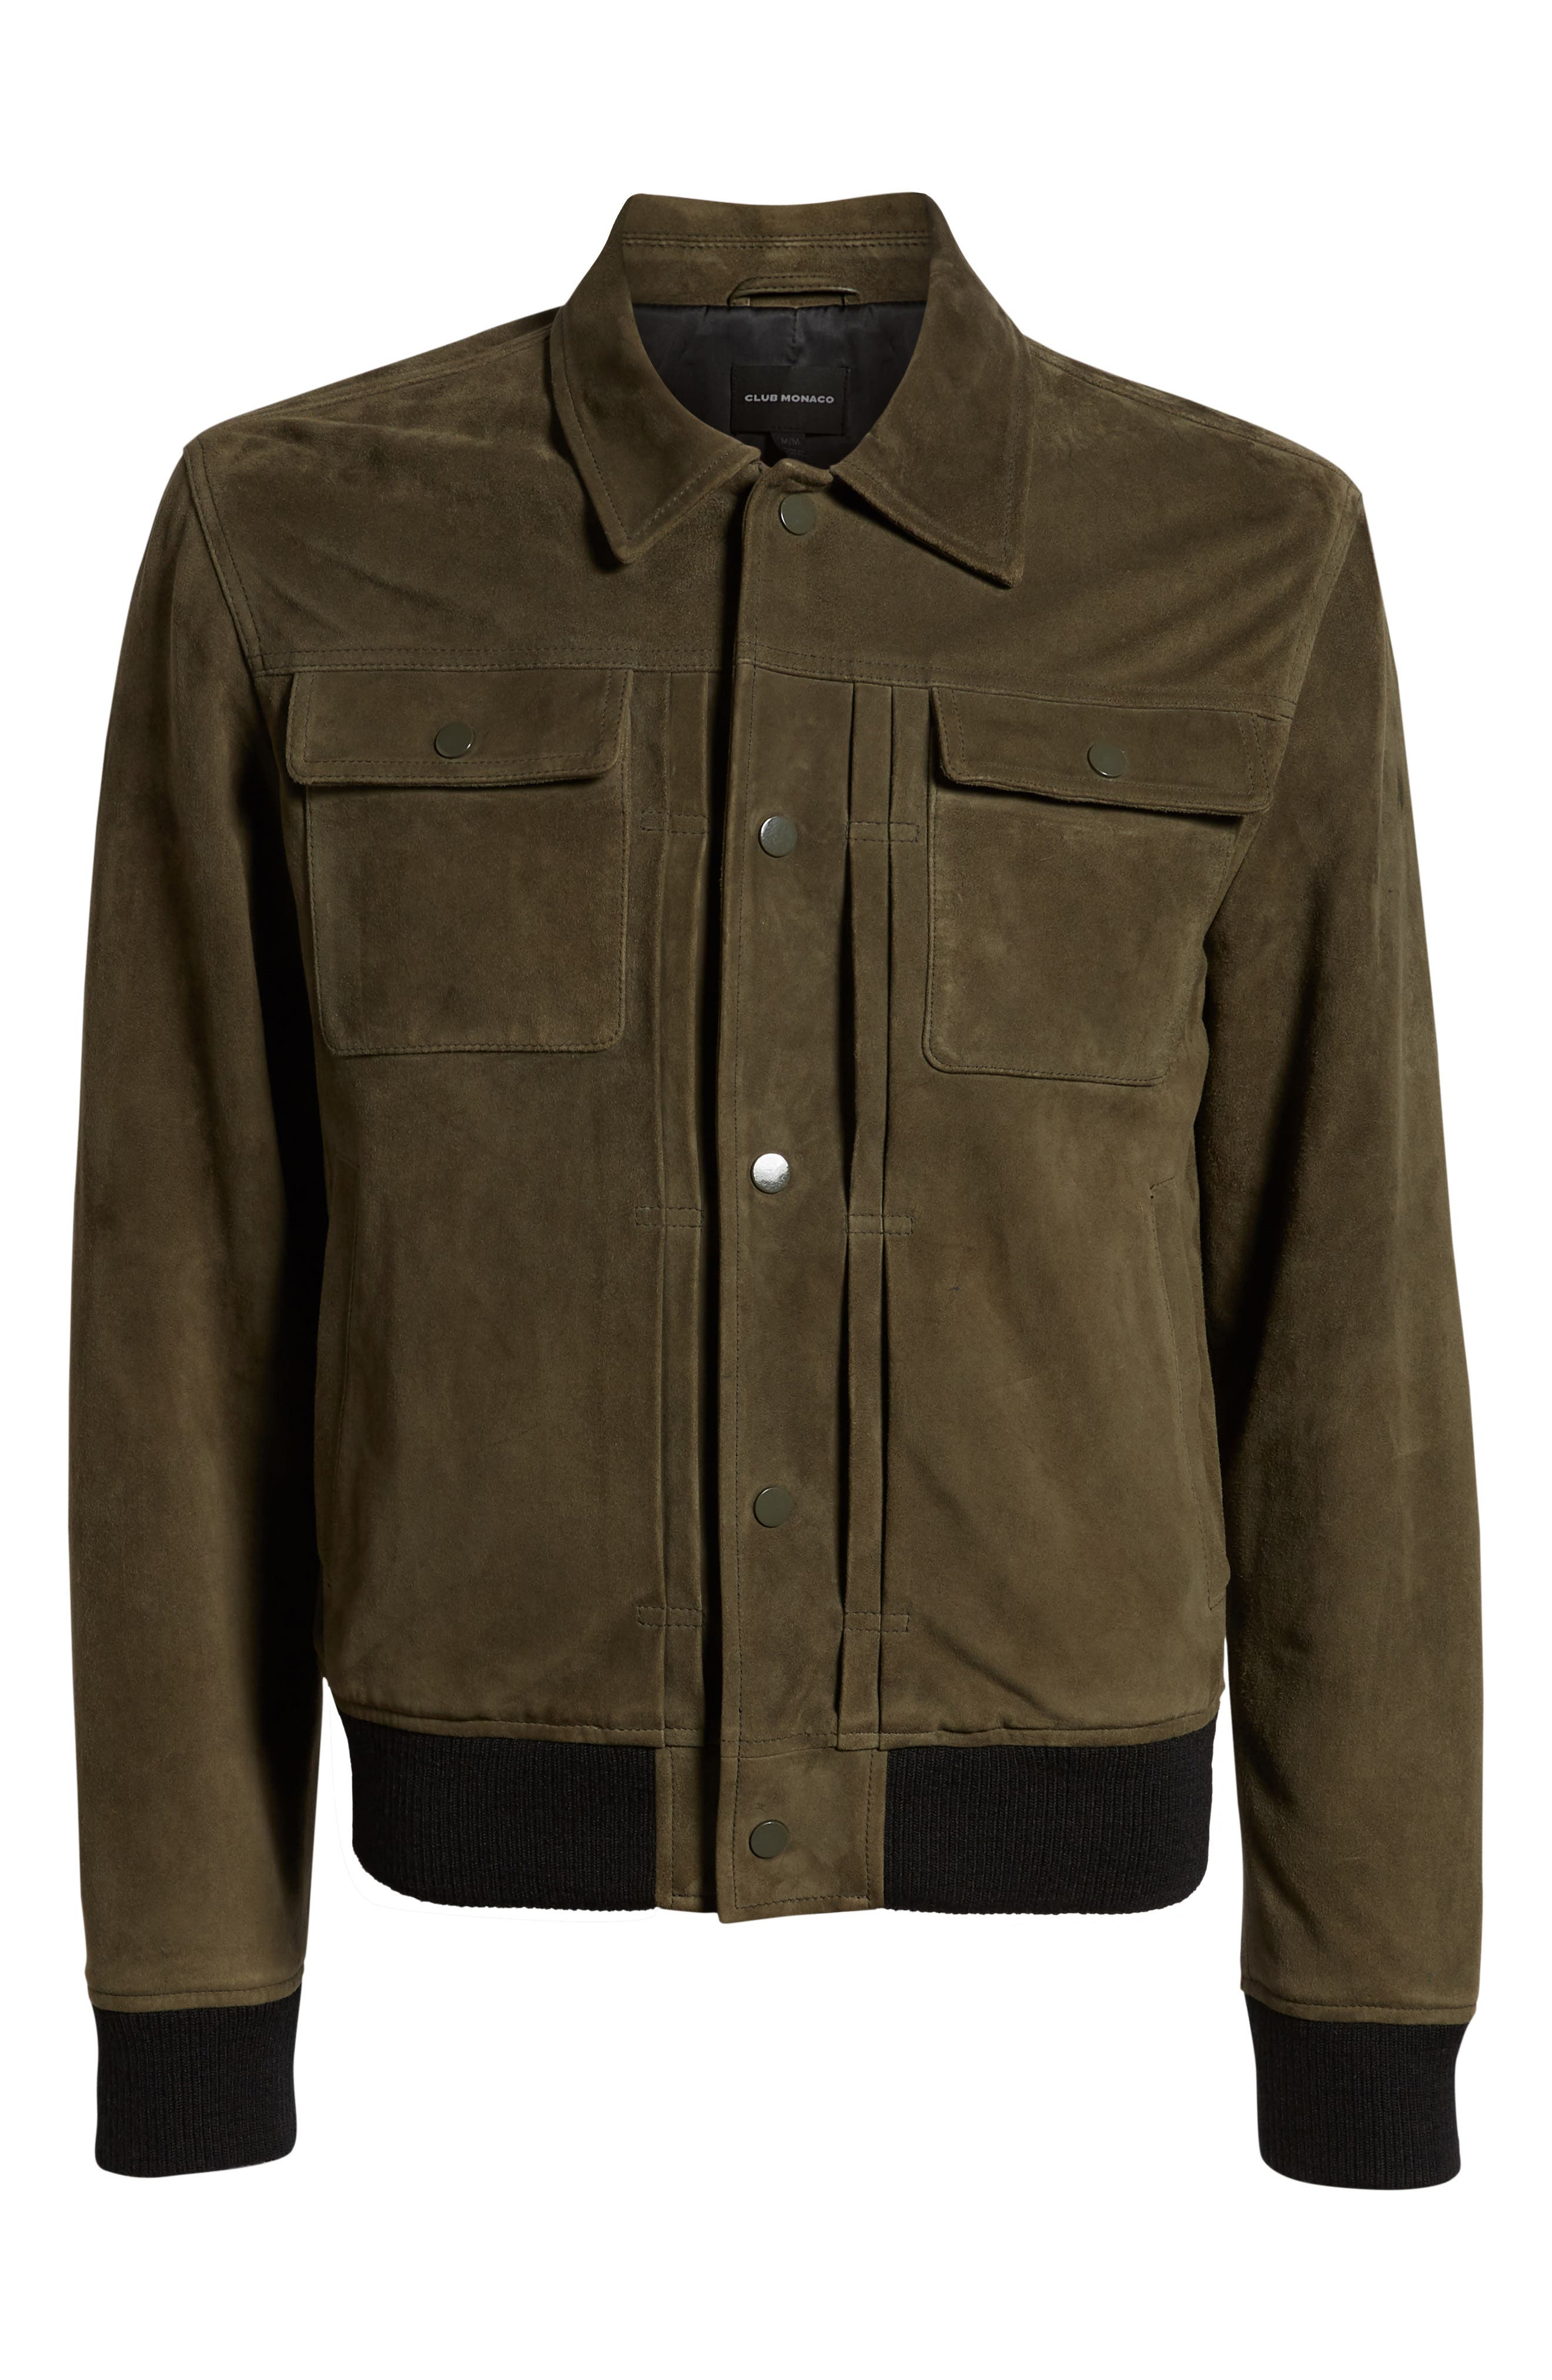 Suede Trucker Jacket,                             Alternate thumbnail 6, color,                             PALERMO OLIVE